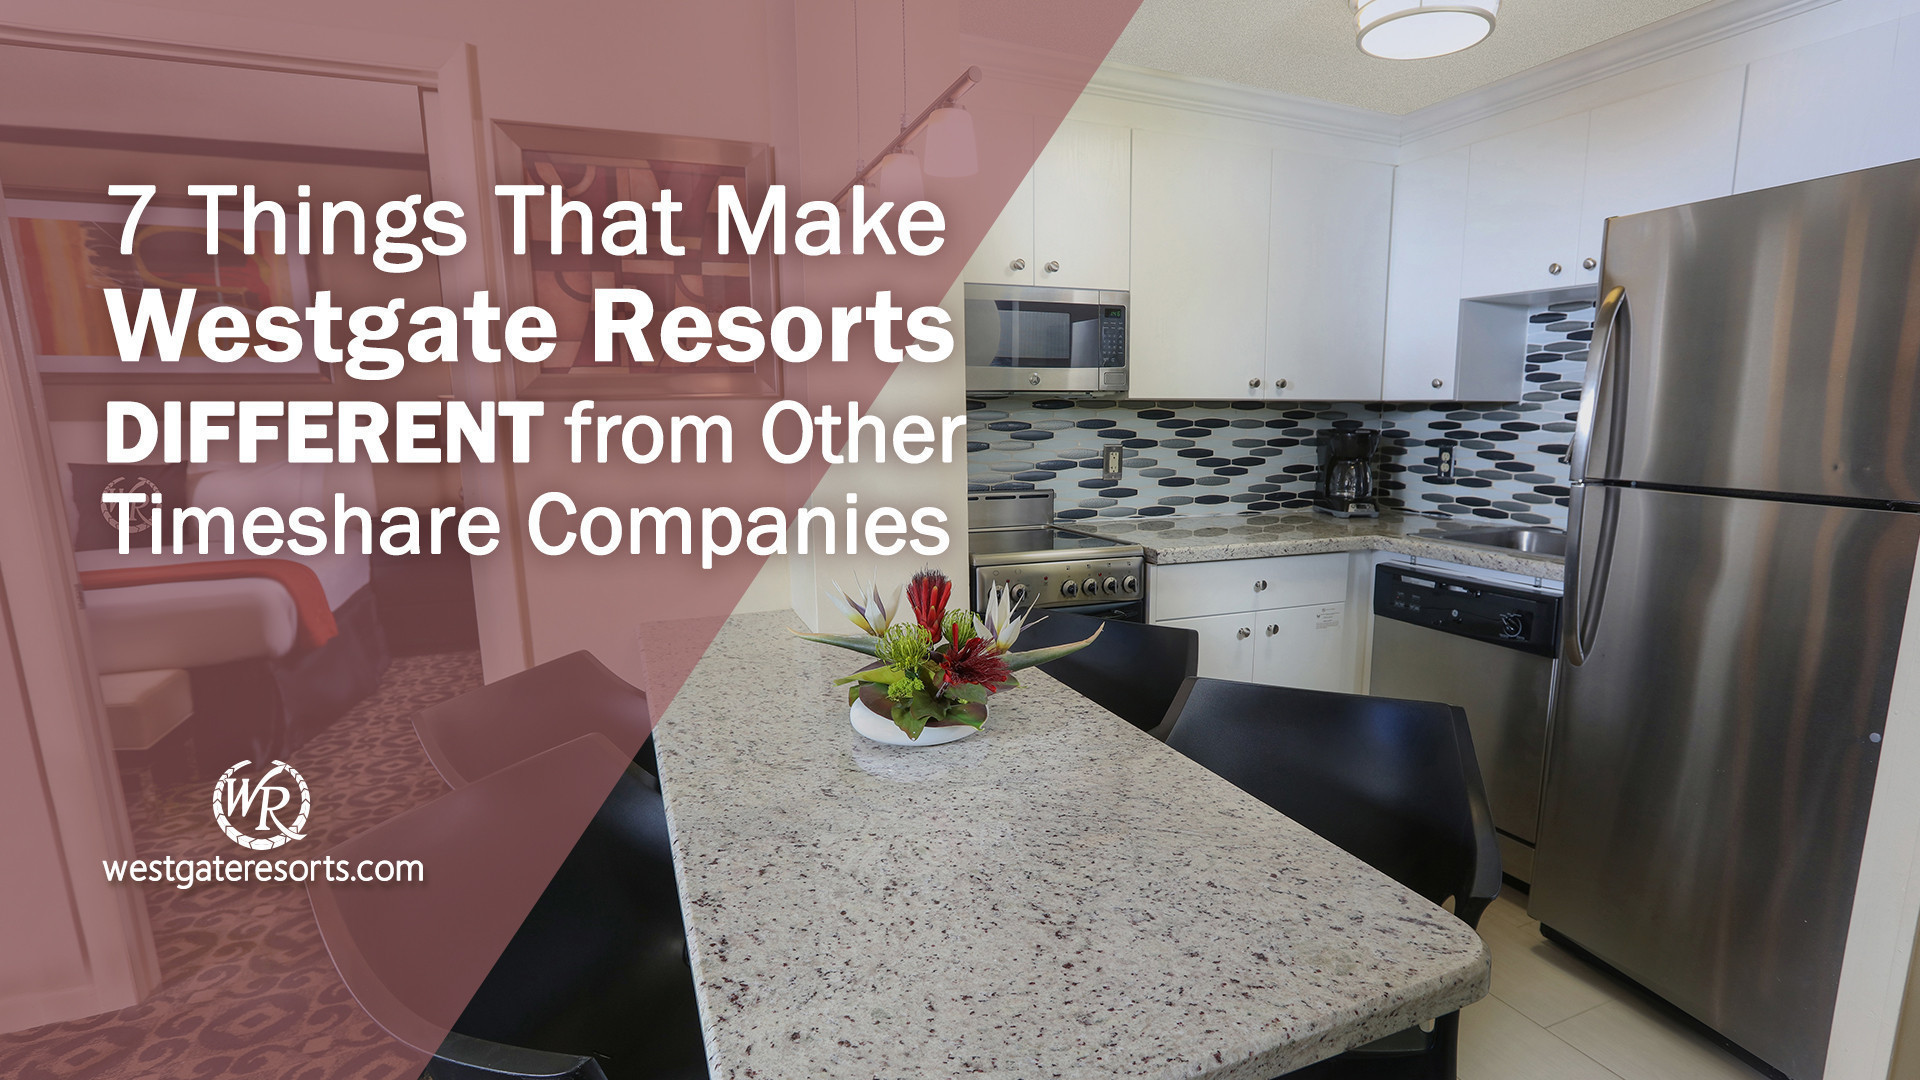 Westgate Resorts Versus Other Timeshare Companies | Westgate Timeshare